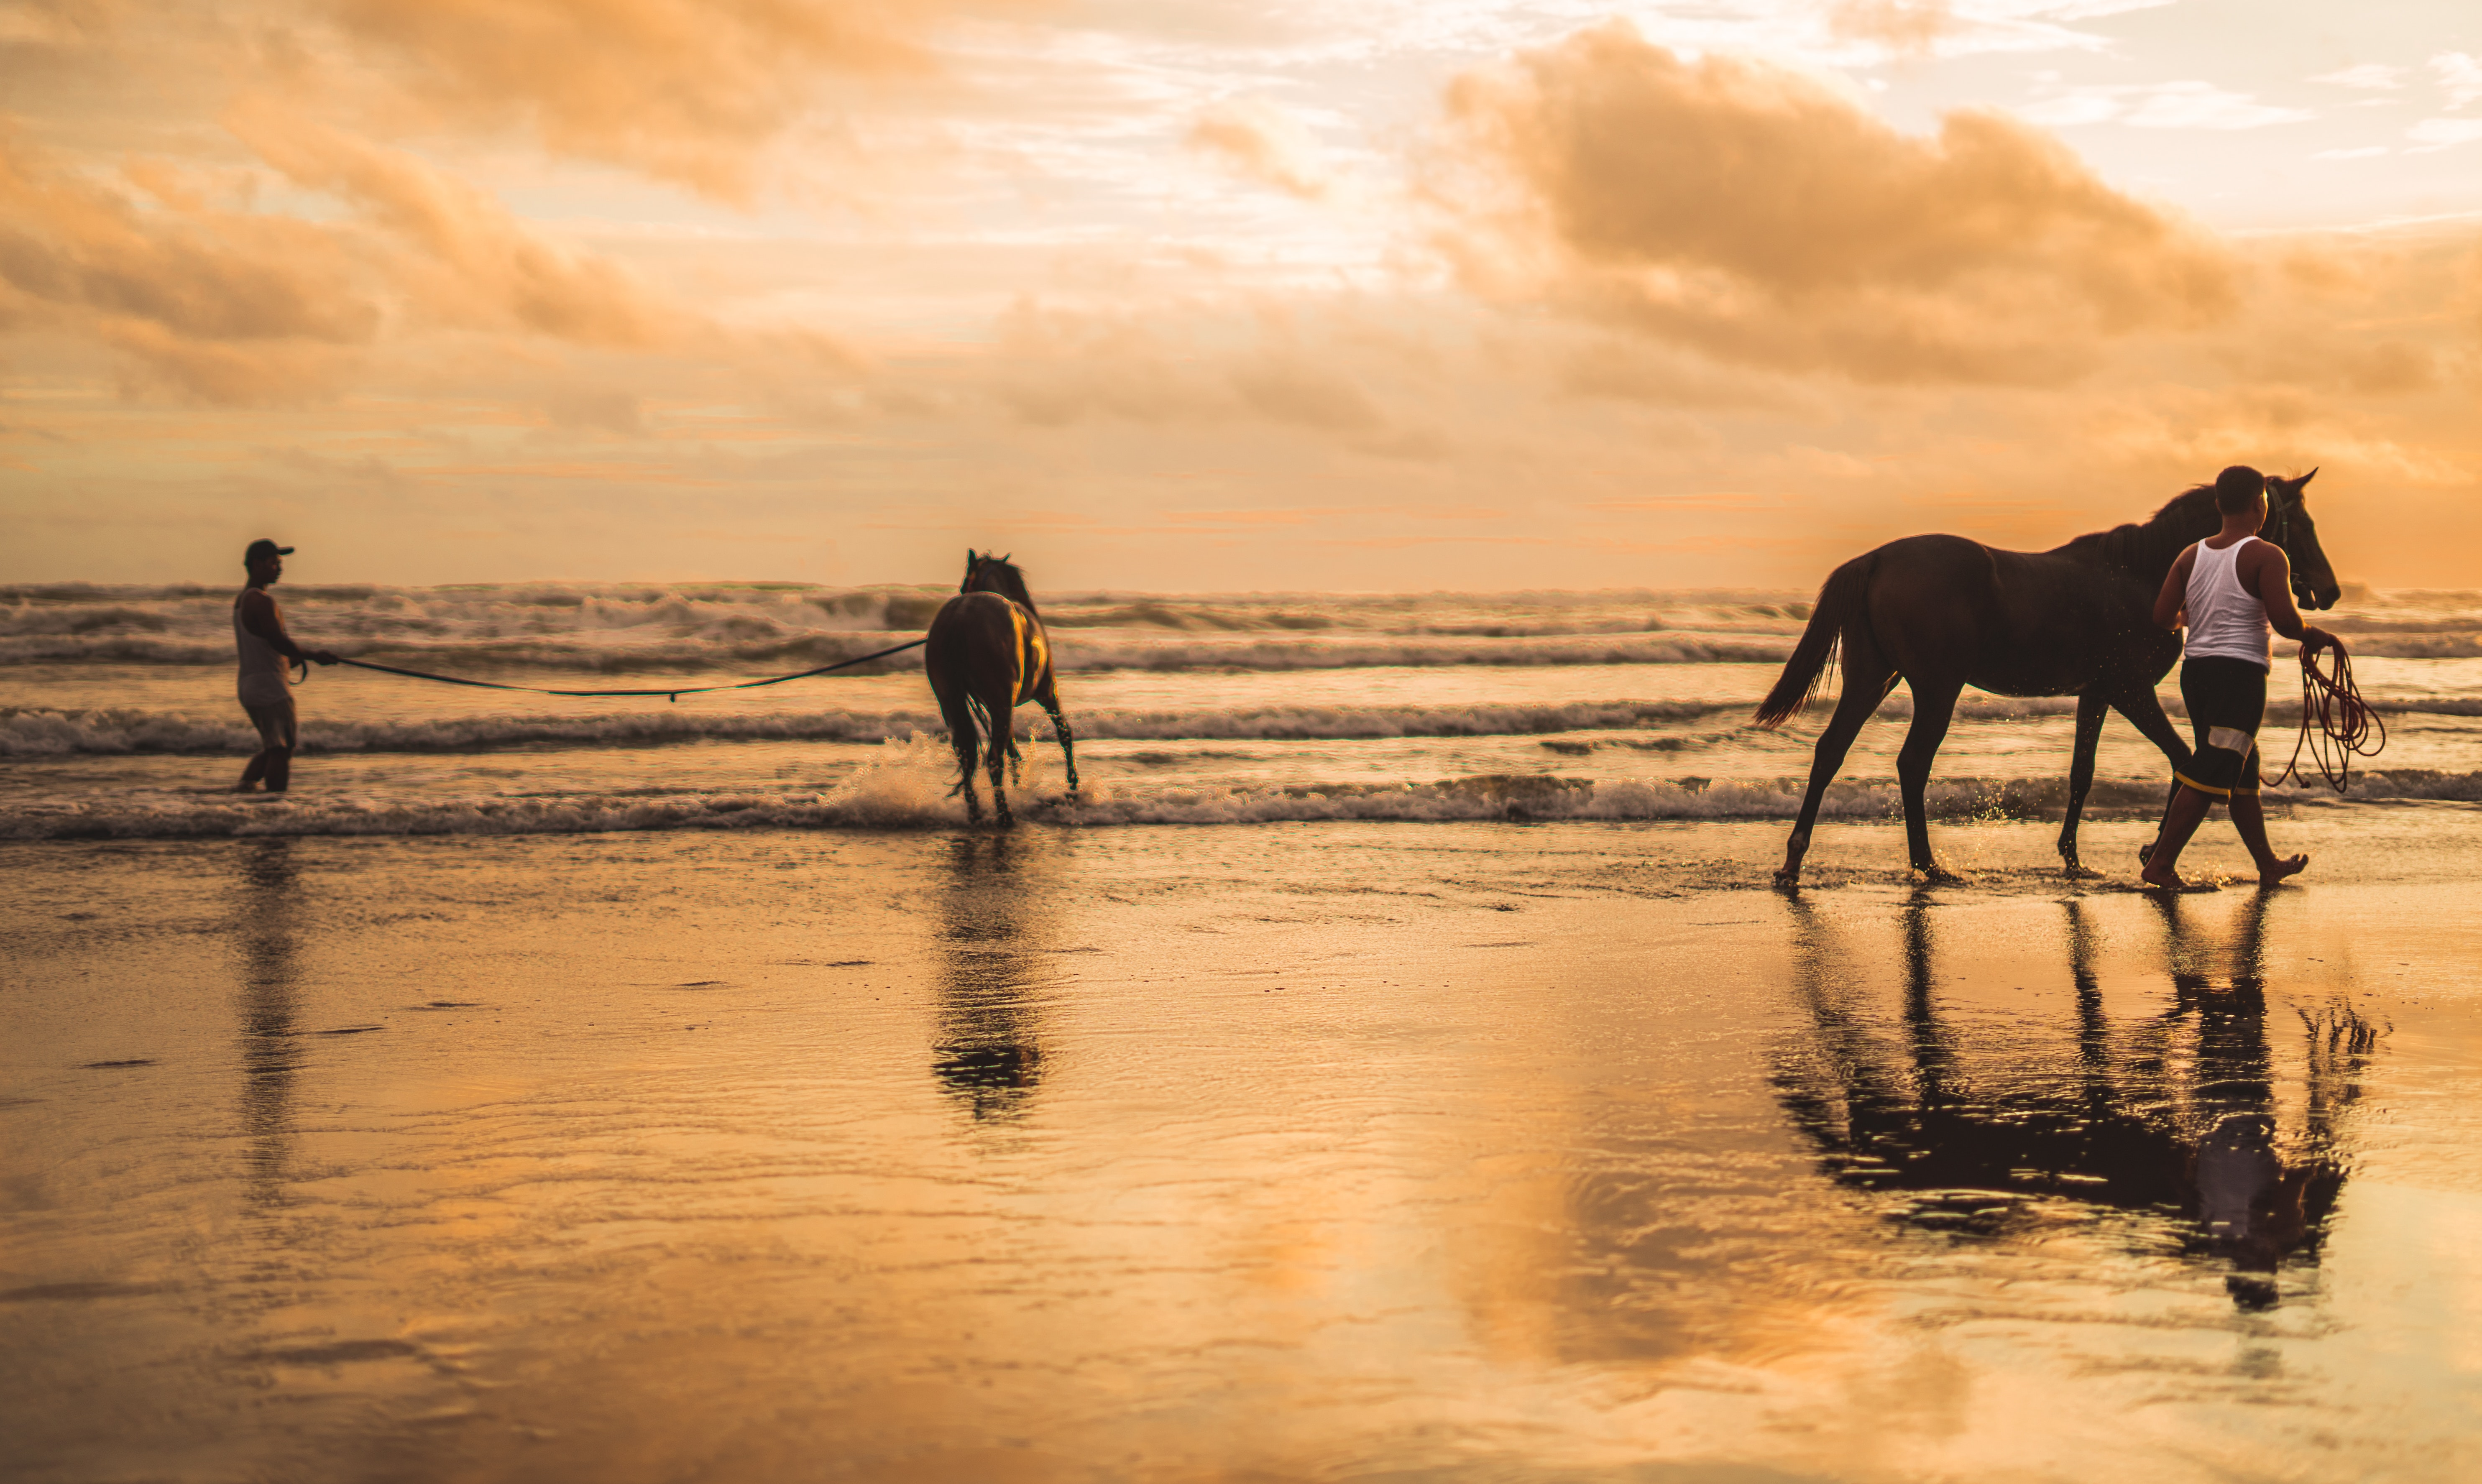 Two horses on the beach photo